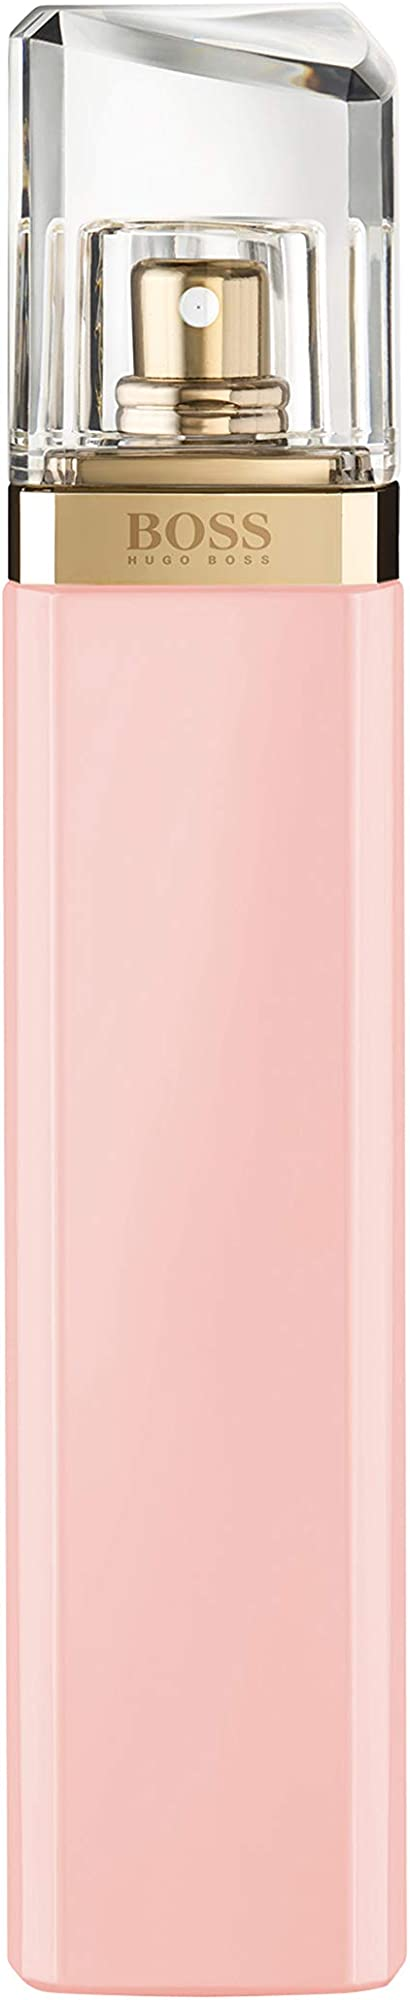 Hugo boss, ma vie, eau de parfum per donna , spray, 75 ml HUGMAVF0107502